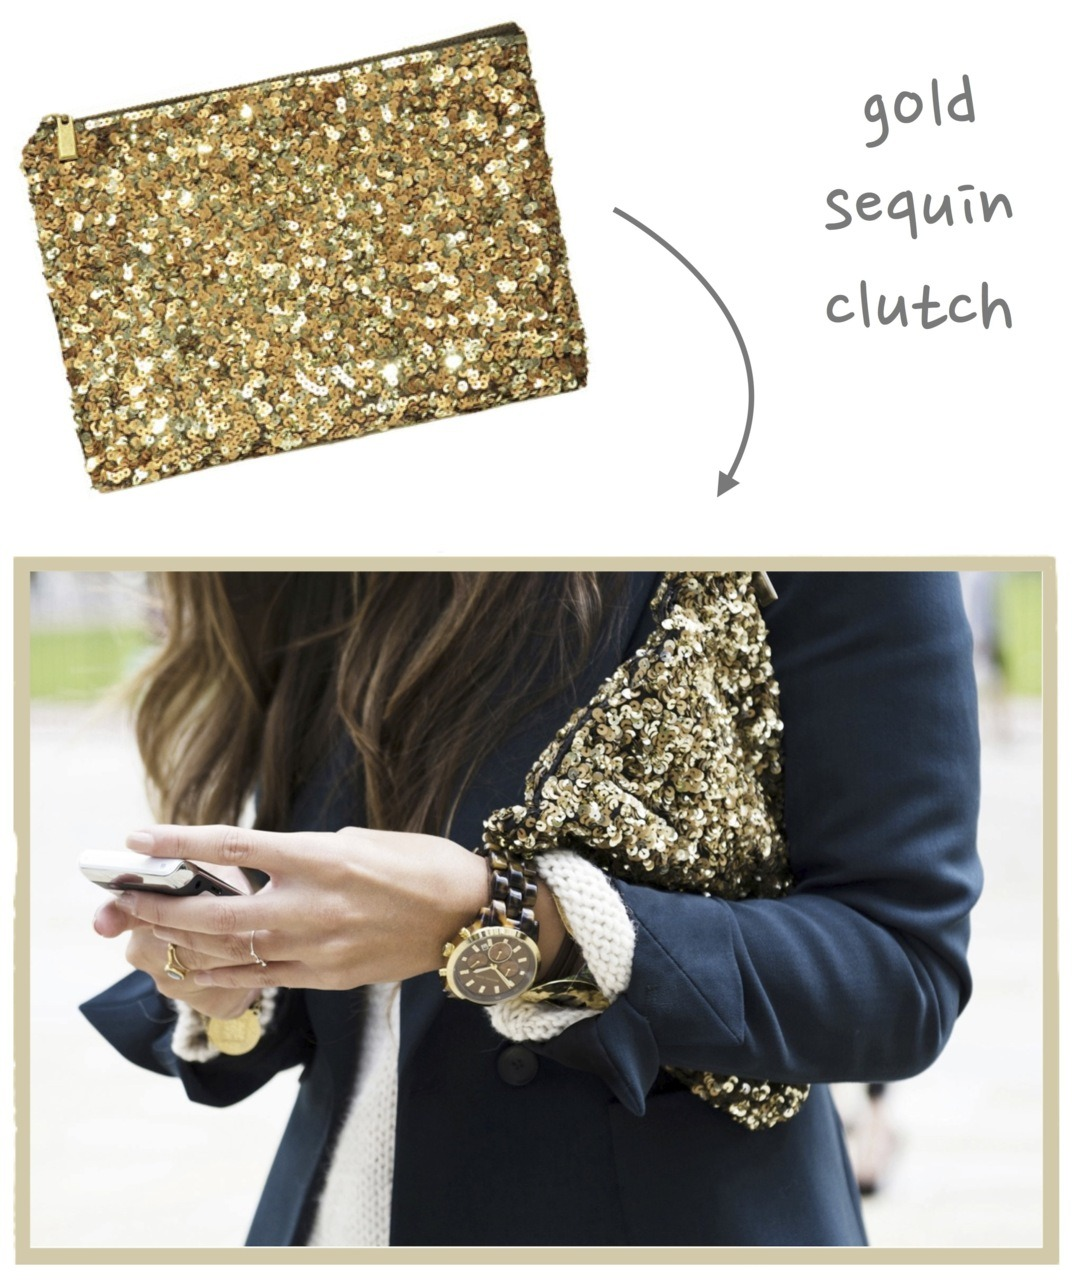 Rosa Loves… Sequins and clutches.  It's no secret that I am addicted to sequins and that I love clutches, so this little gold sequin clutch from Zara has become my latest obsession. I first spotted this amazing clutch in some photos from FW and then the lovely Kim of Brunette Blogging featured it in some of her recent outfits. It's so perfect, so sparkly, so me! WANT! {Photos via Zara}